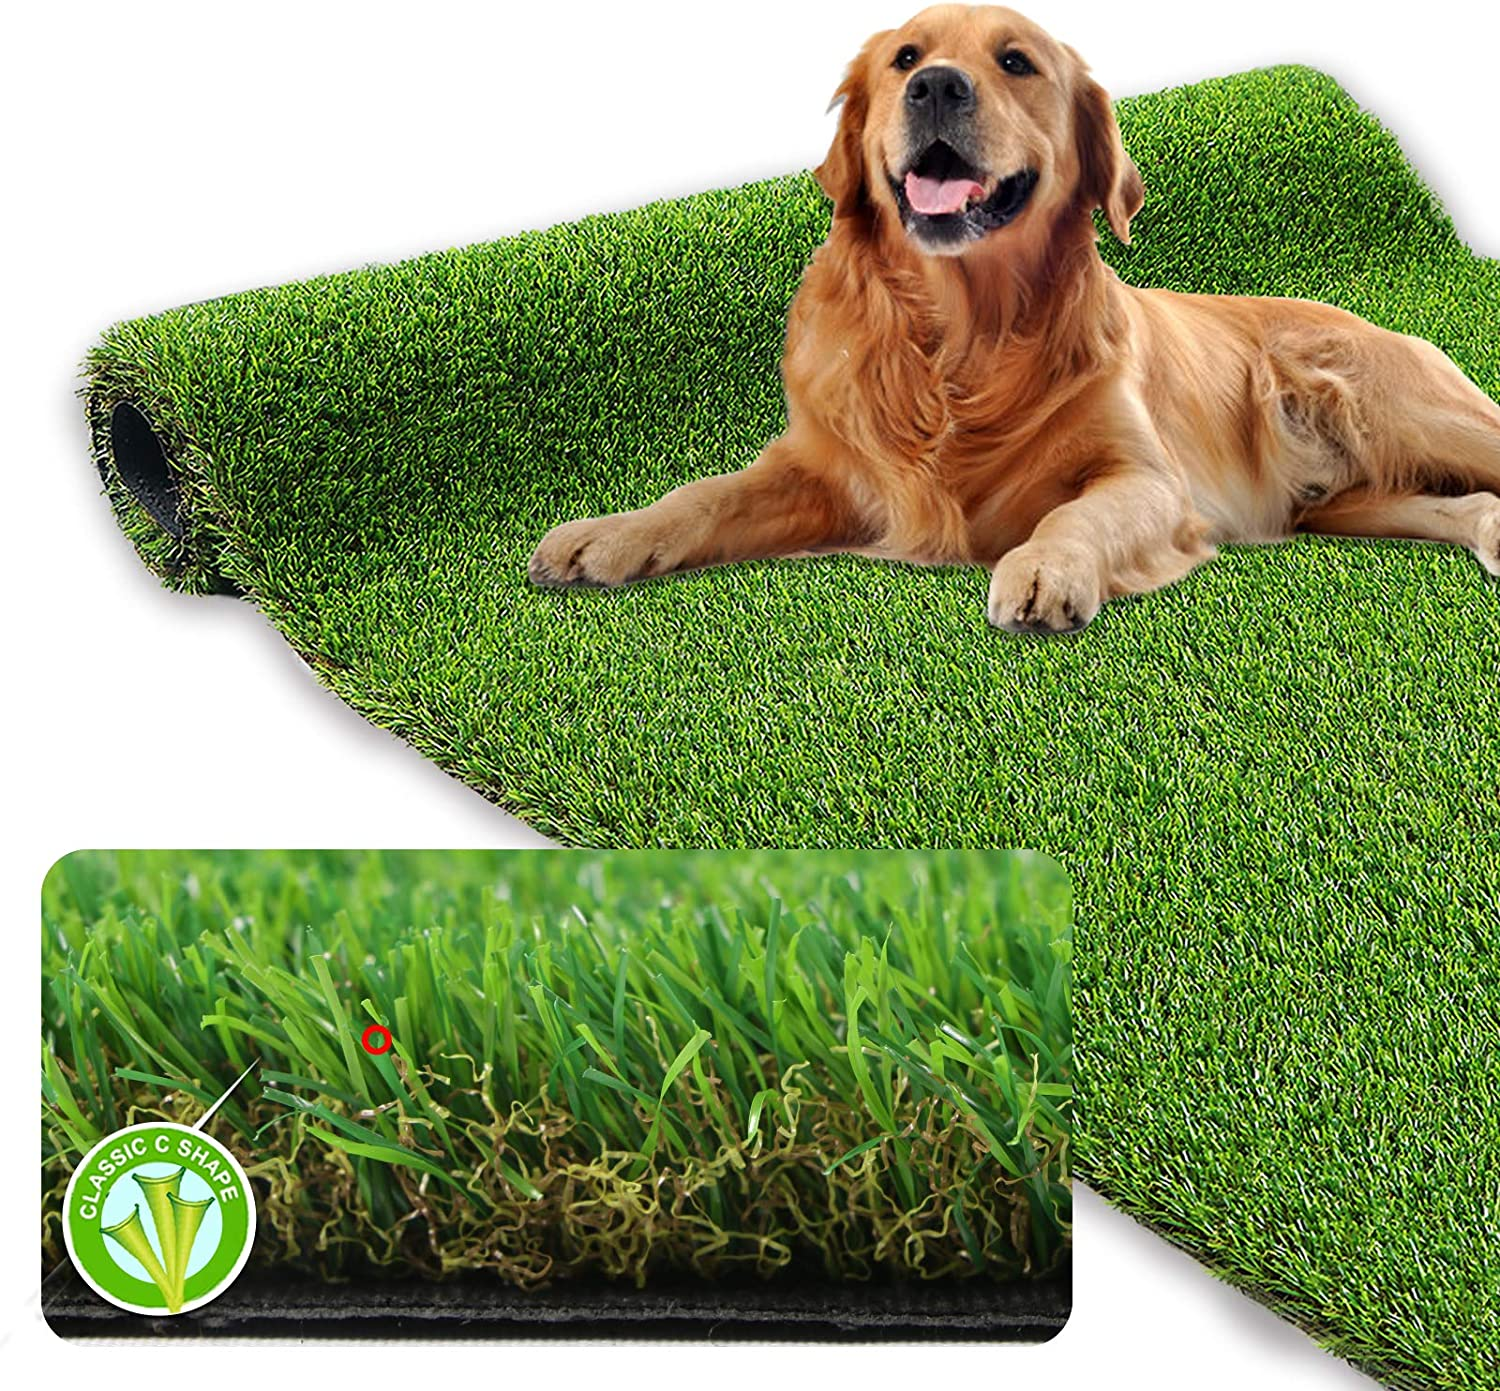 "XLX TURF Premium Thick Artificial Grass Rug 3ft x 5ft for Indoor/Outdoor, 1.38"" Pile Height, Realistic Synthetic Fake Grass Dog Pet Turf Mat Carpet Garden Lawn Landscape"